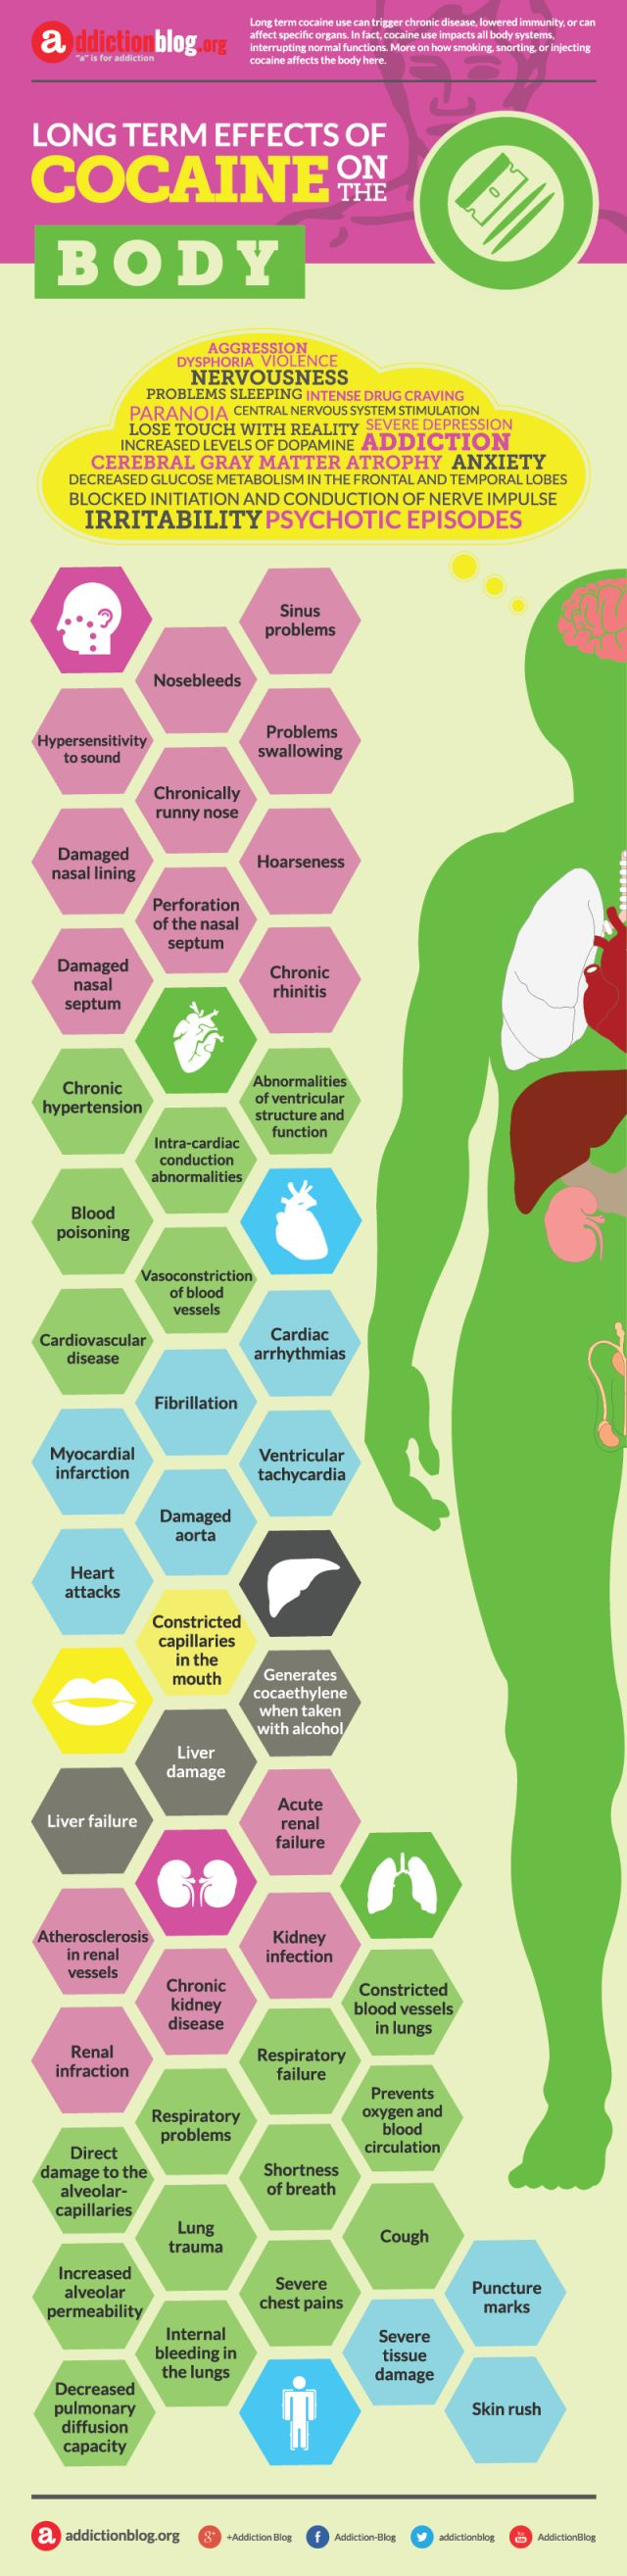 Long term effects of cocaine on the body (INFOGRAPHIC)